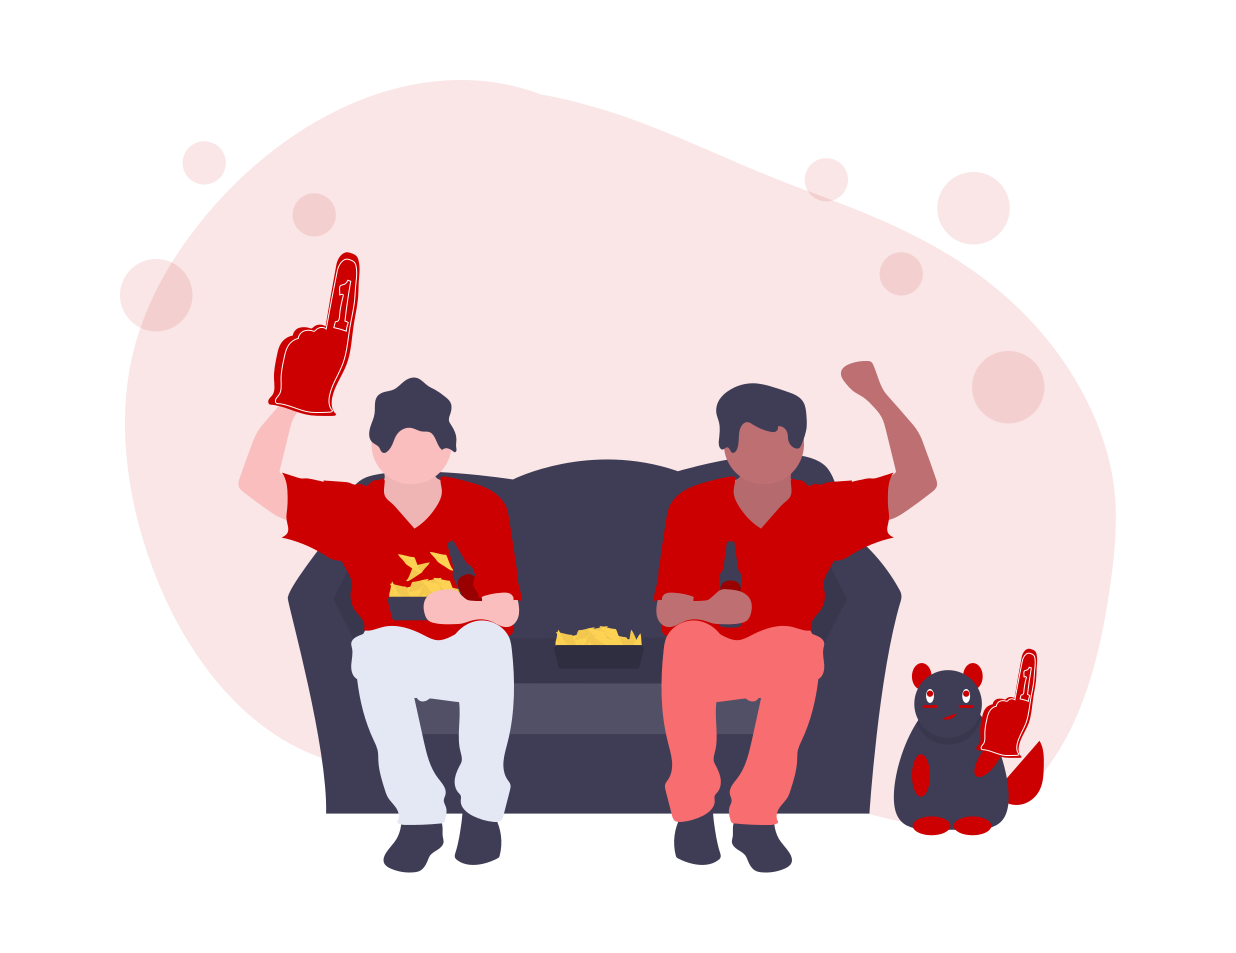 two people sitting on sofa, one with foam finger, one raising arm in fist pump, enjoying snacks and drinks